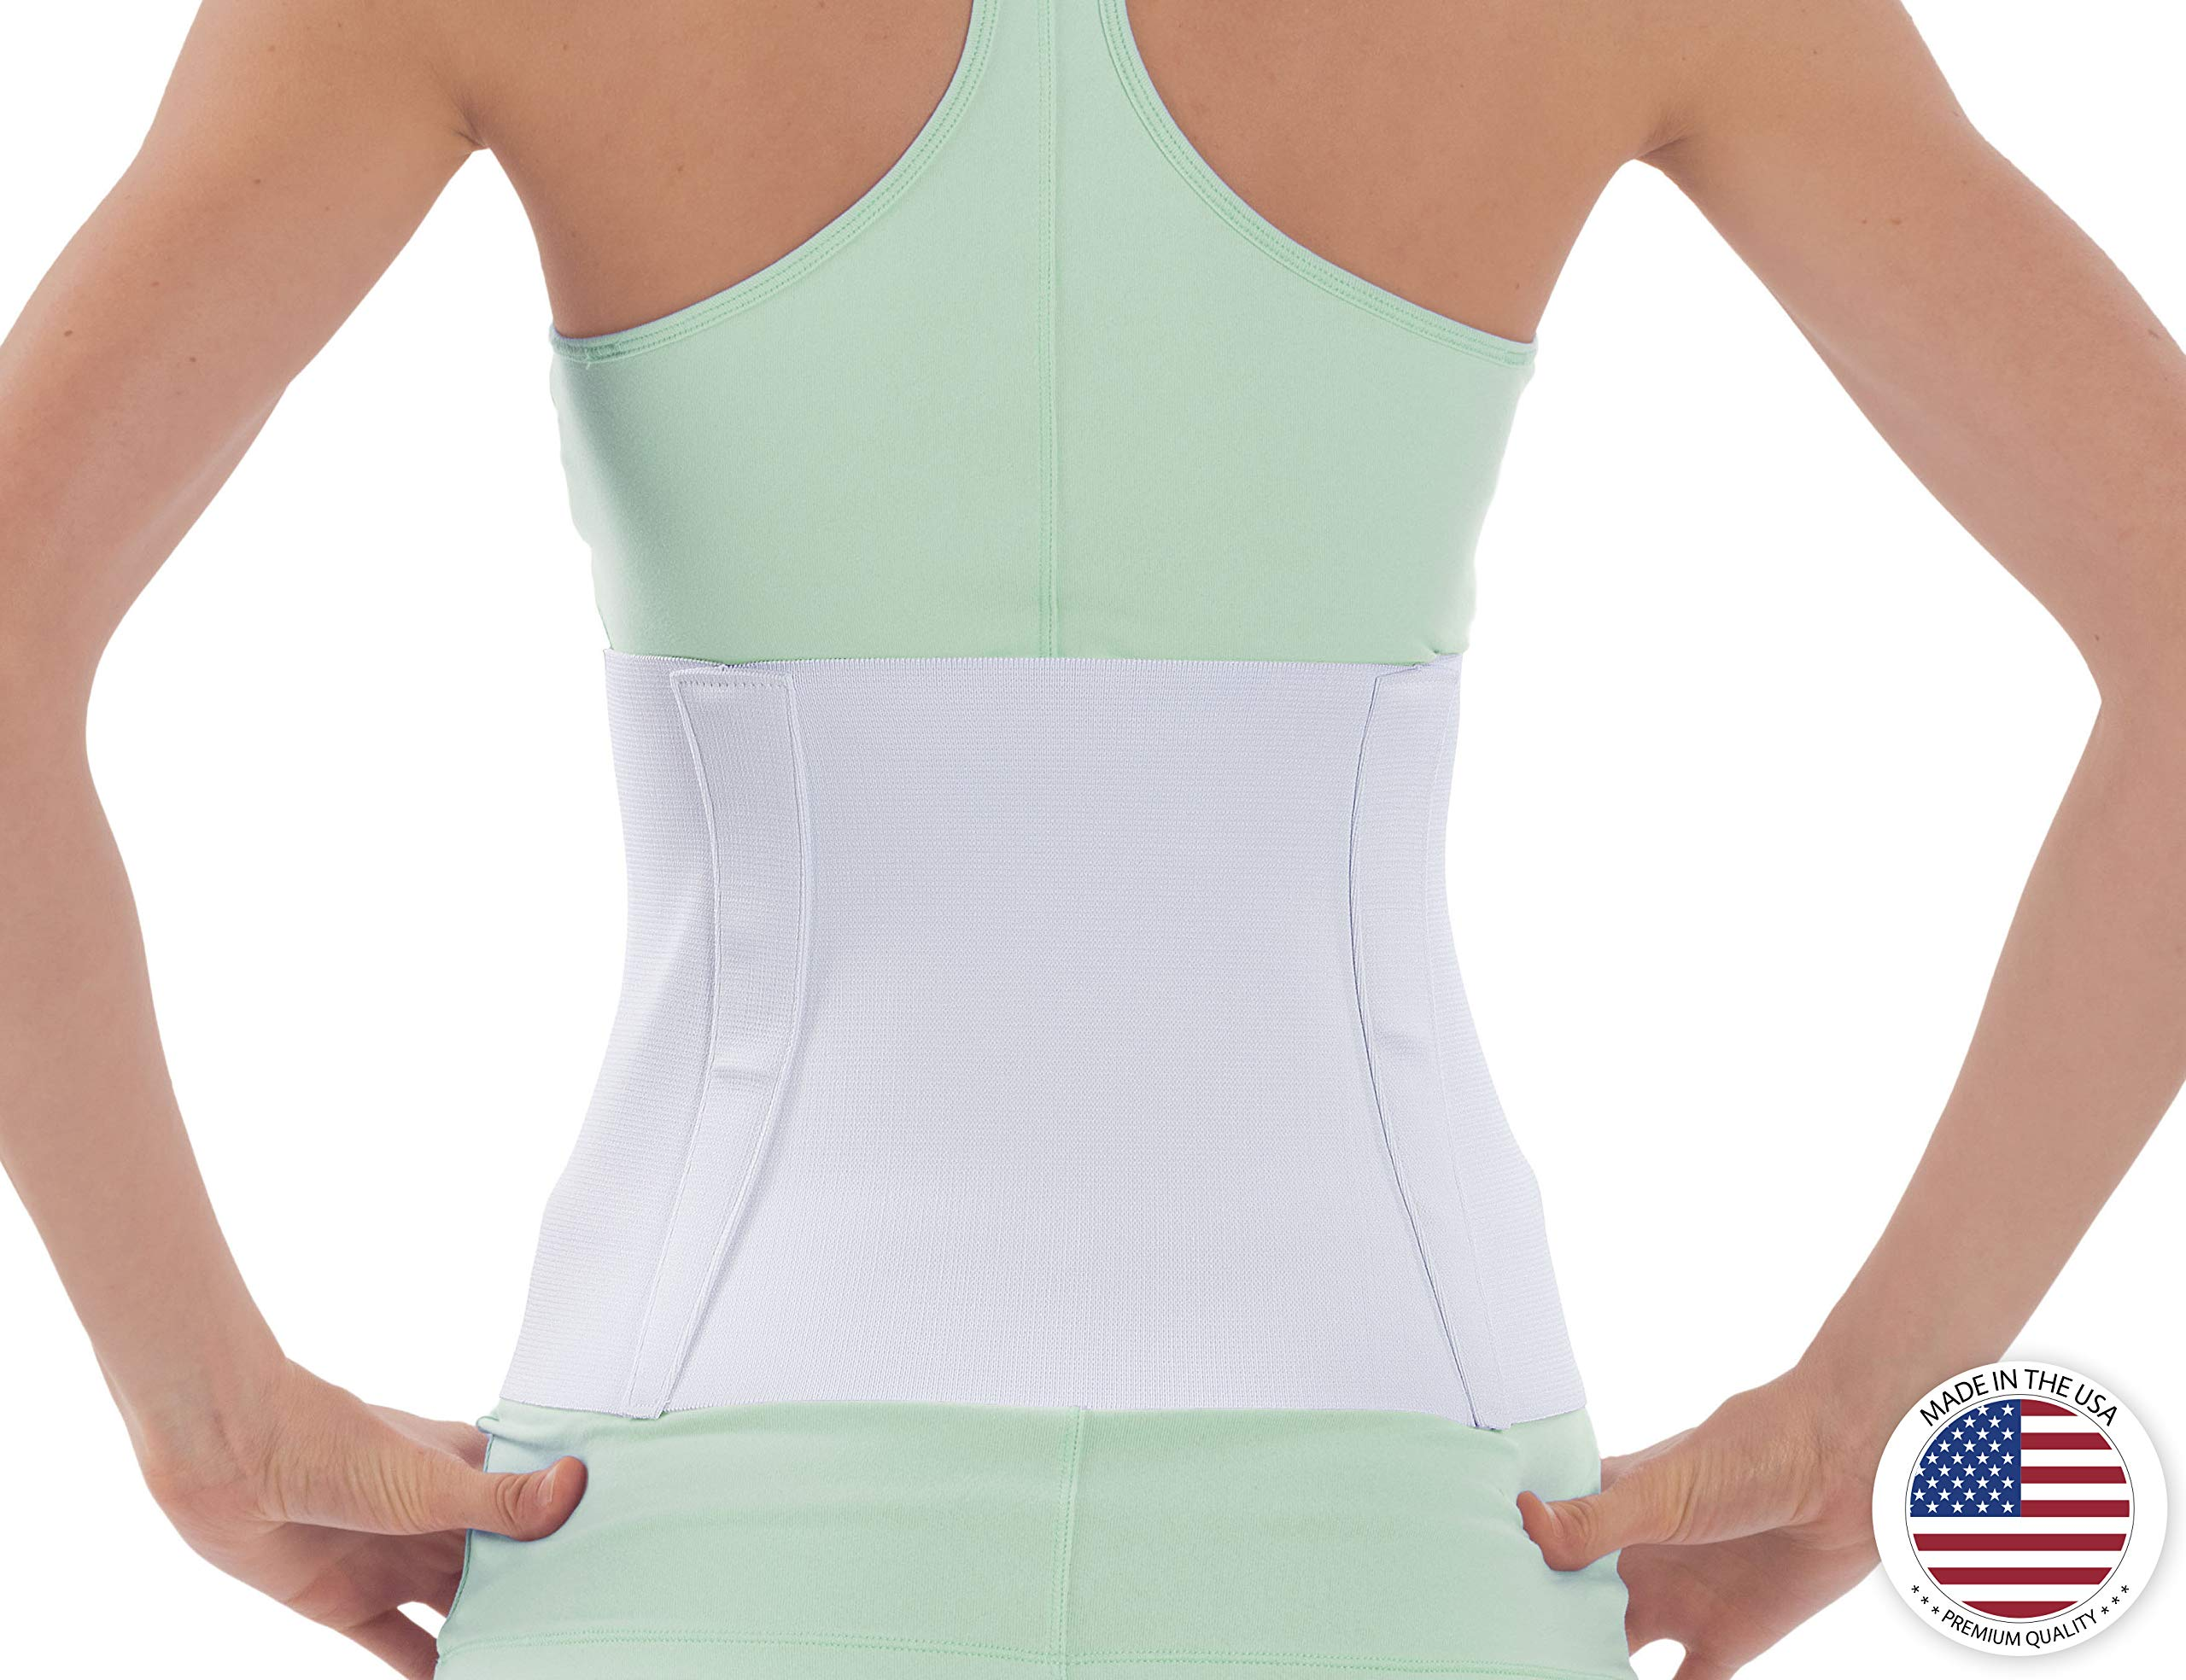 NYOrtho Tapered Abdominal Binder Compression Wrap - Breathable Stomach Support Post Injury or Surgery- with Contoured Body-Specific Design - 36-42 Inch